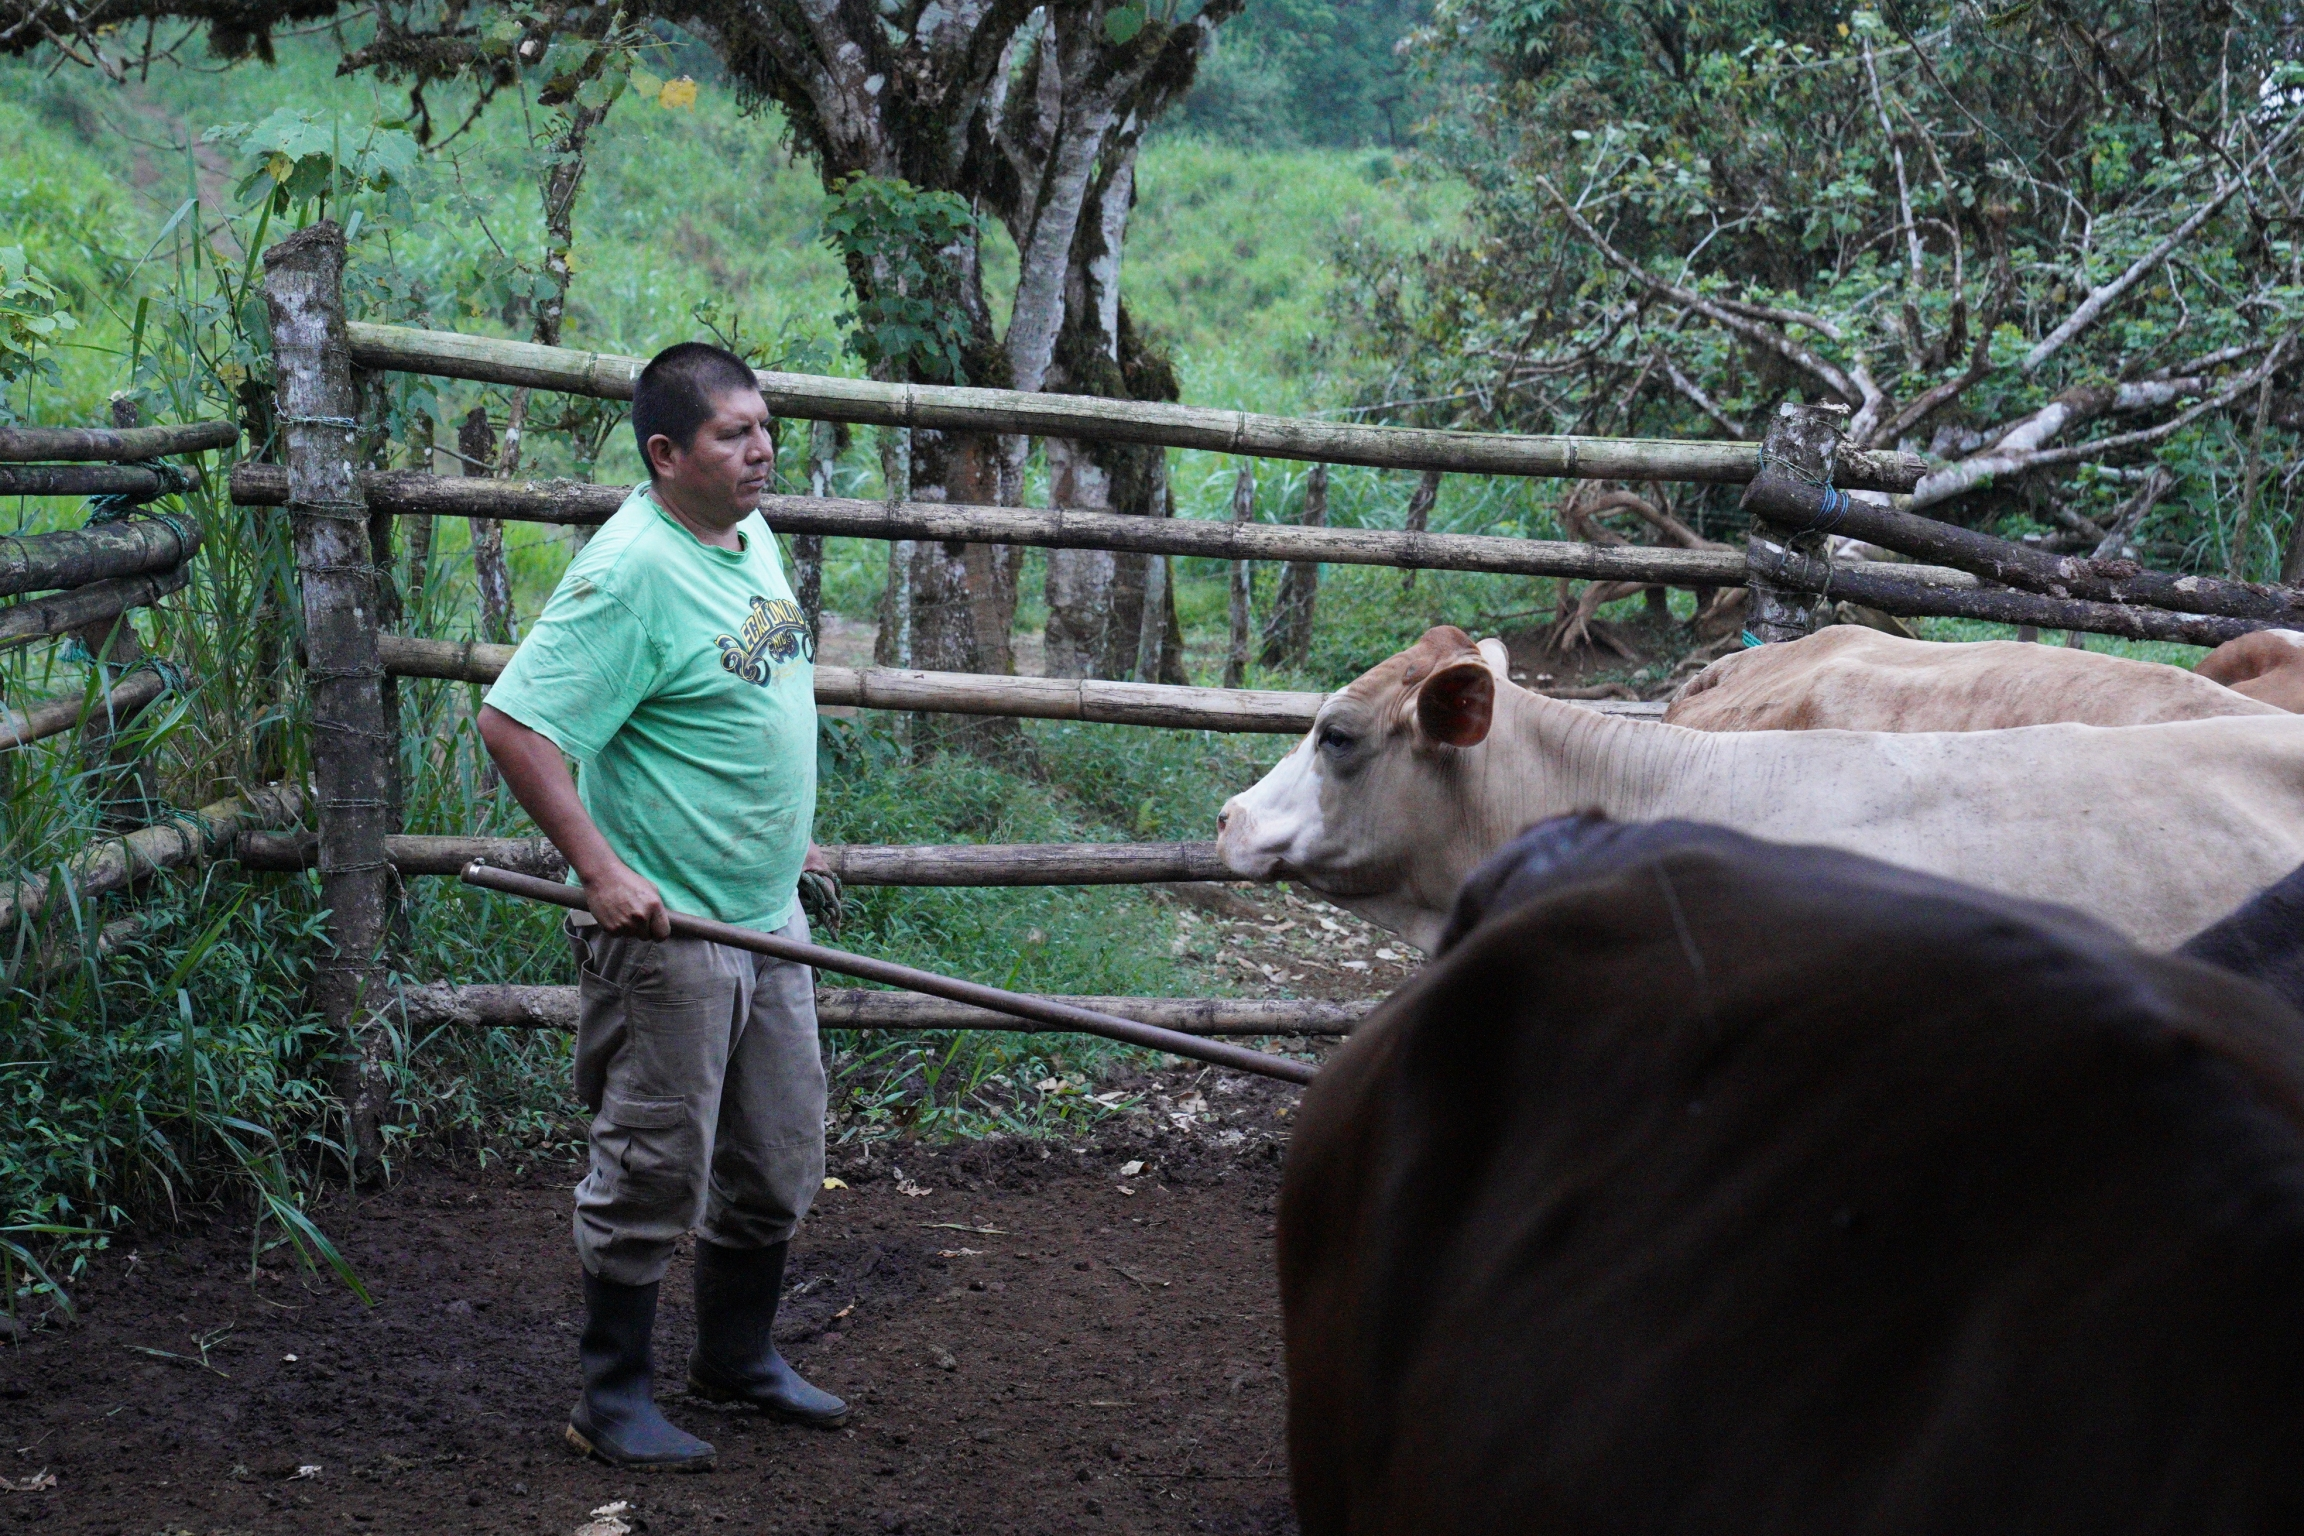 Javier Cando gets ready to milk his cows early in the morning on May 6, 2021. Due to the pandemic, Cando has had to switch from workingasa guide on the Galápagos Islands tomilking cows on his family's farm.